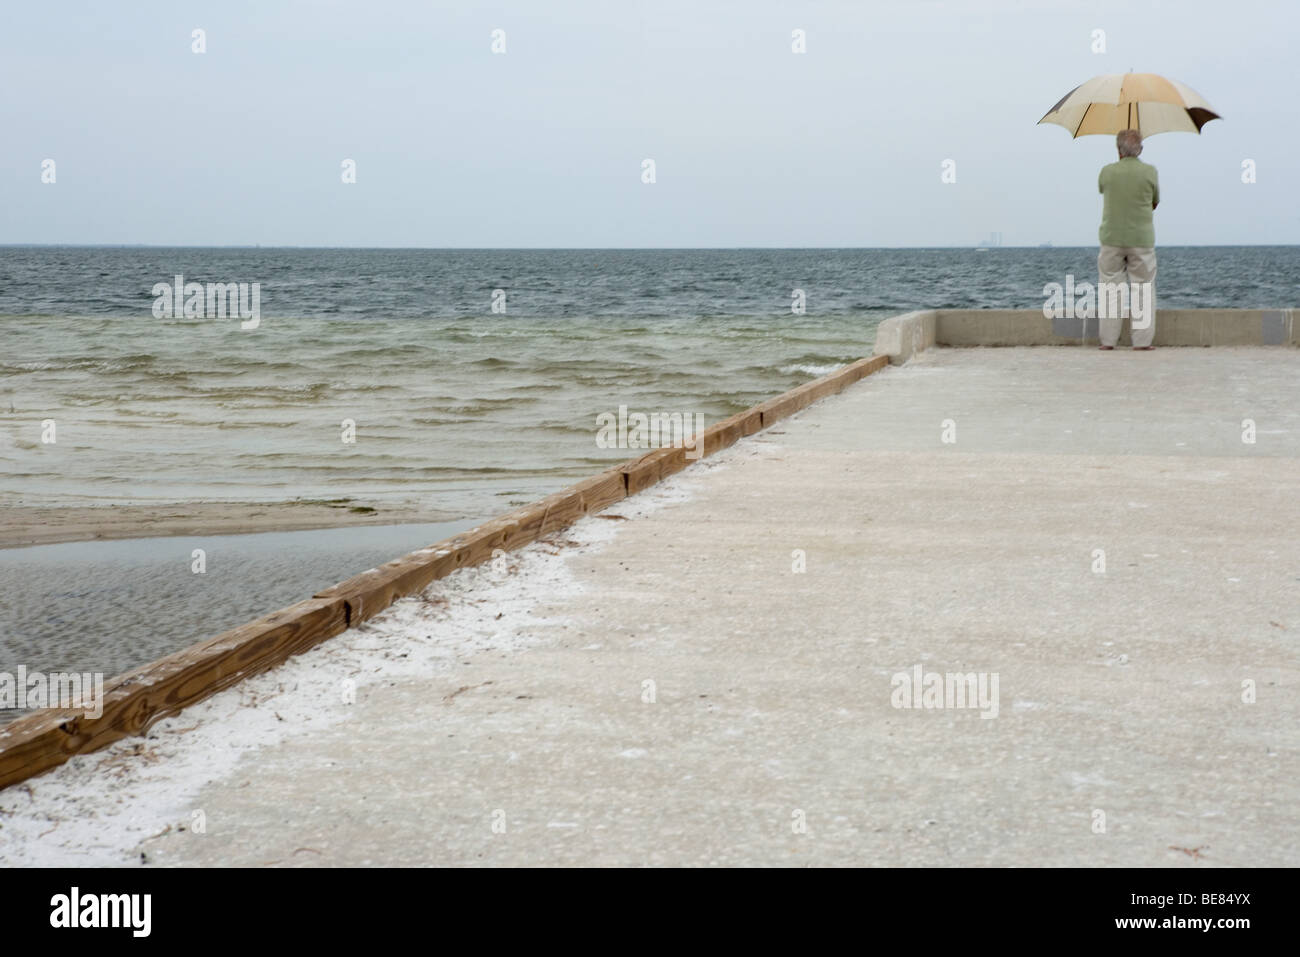 Man standing at end of pier, holding up umbrella, rear view - Stock Image